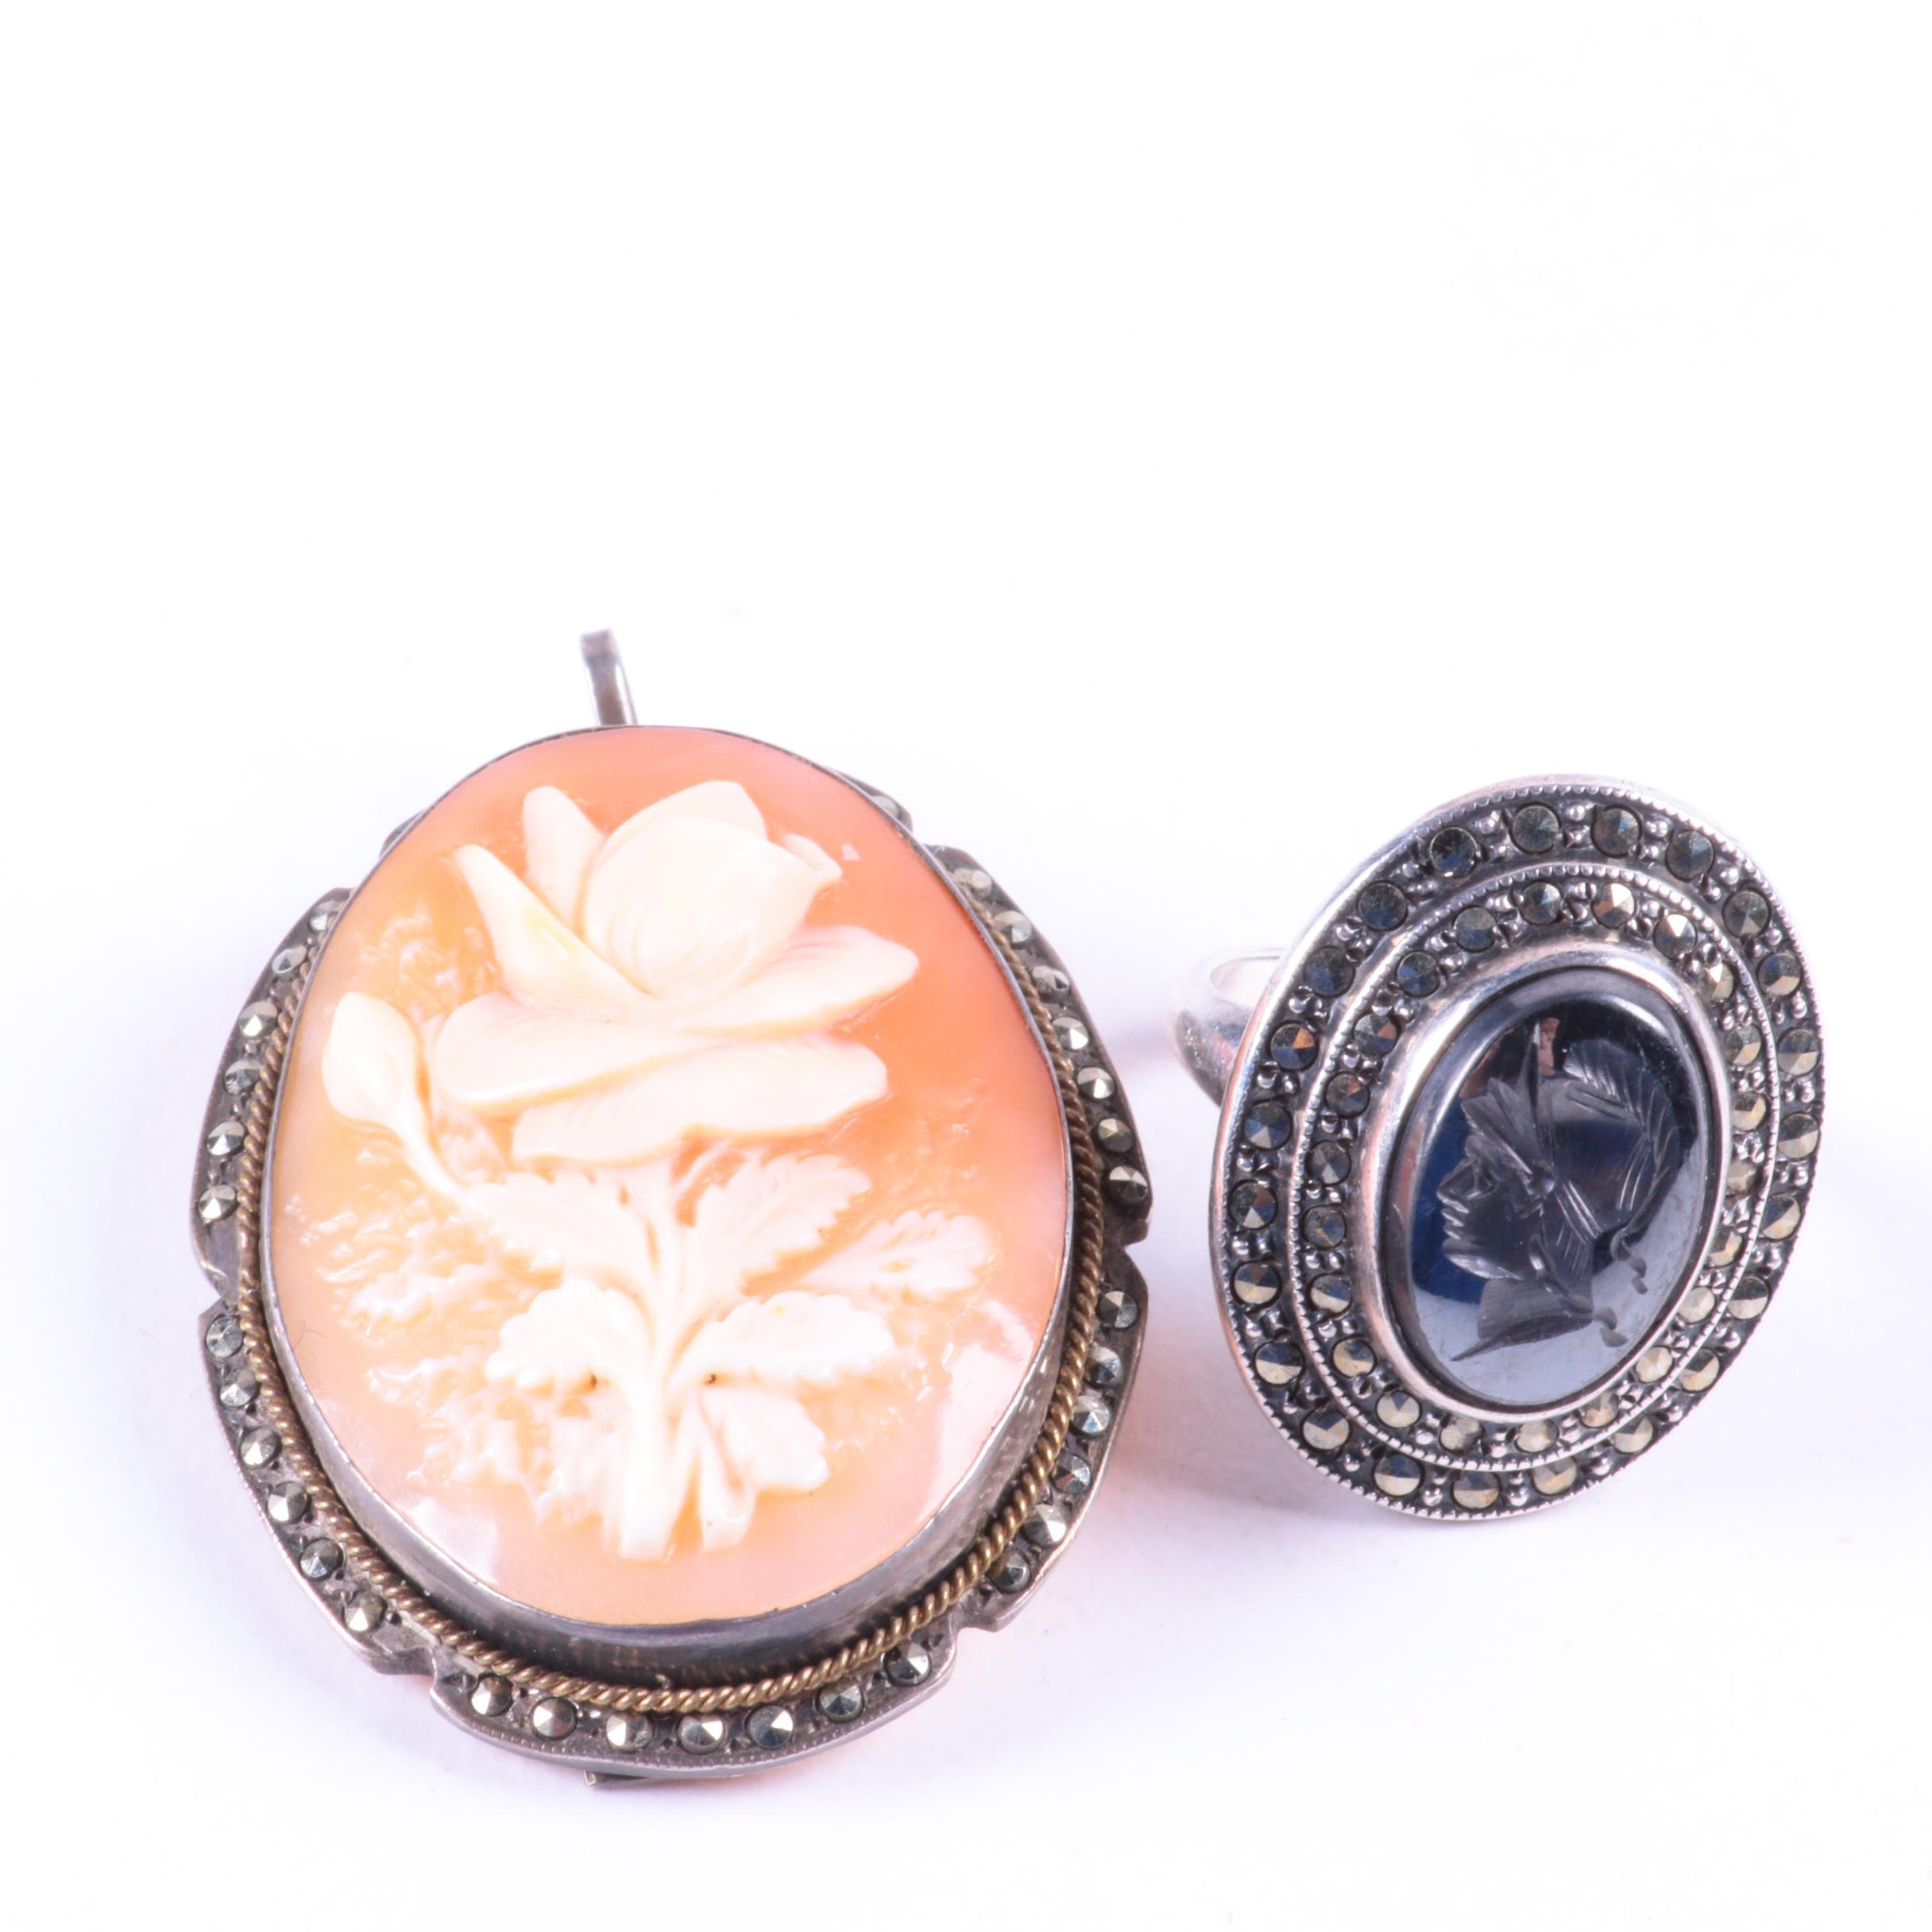 Sterling Silver Ring and 800 Silver Cameo Converter Brooch